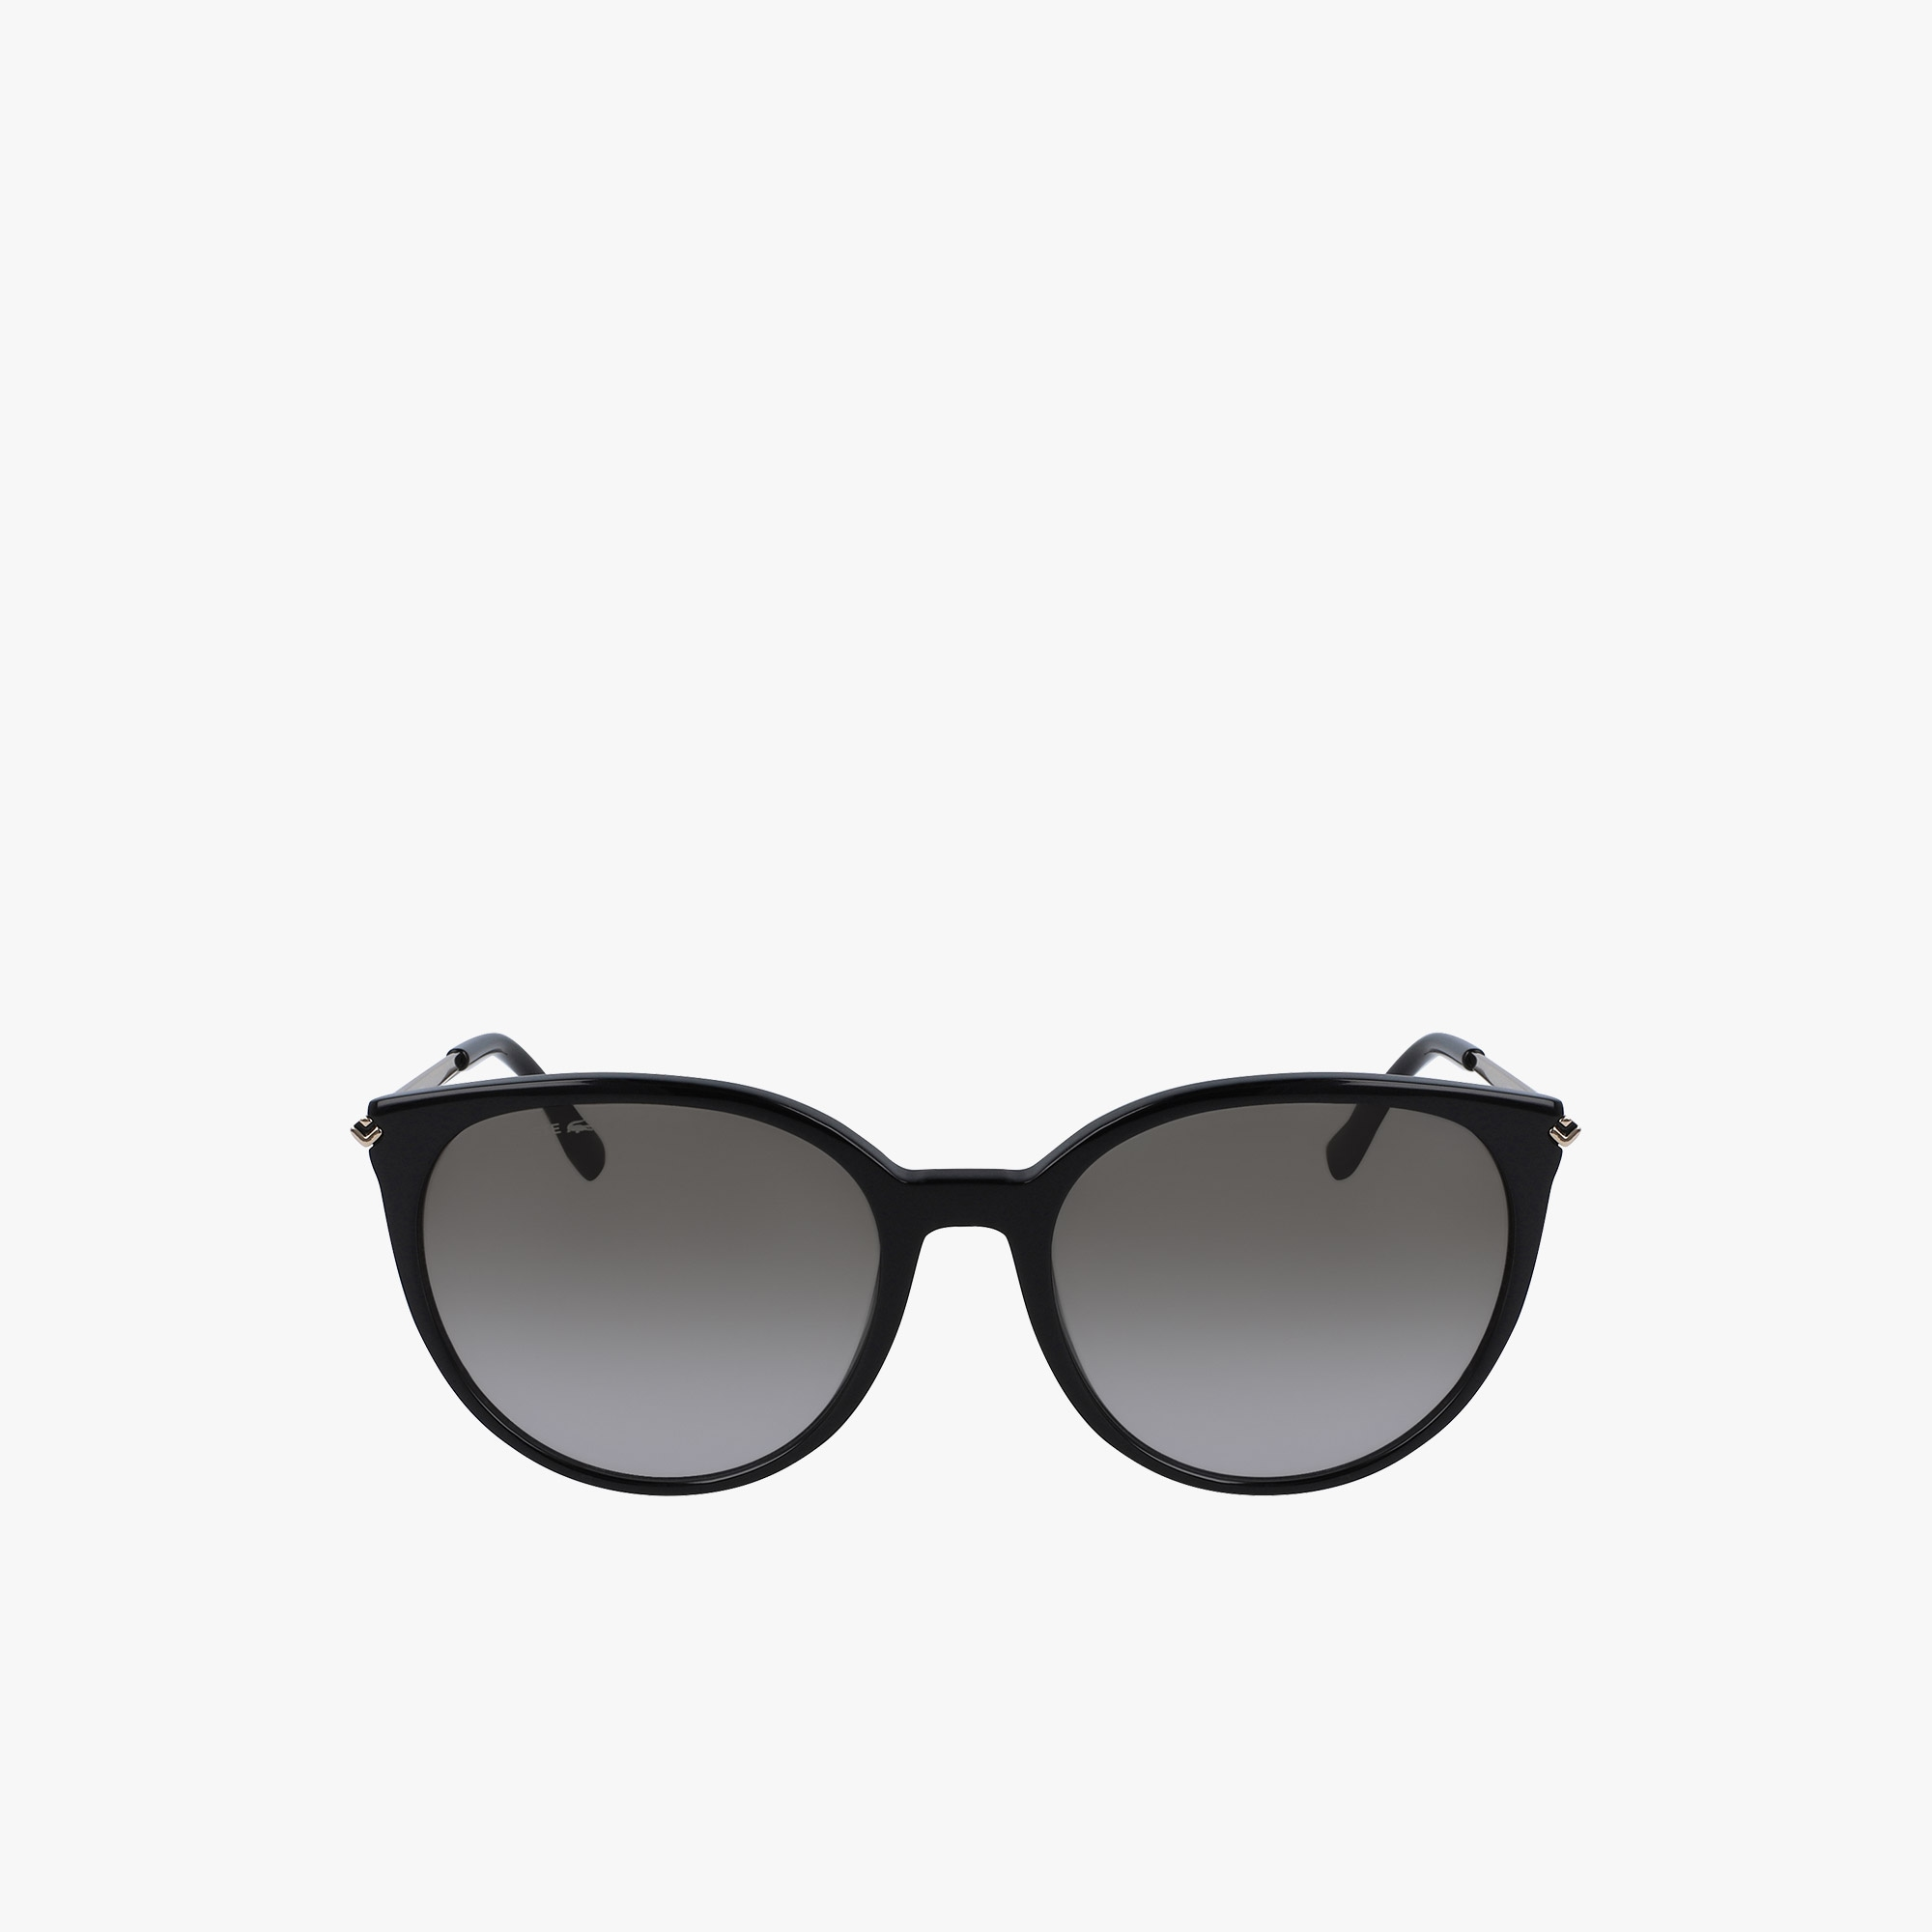 Oval Acetate La Piquée Sunglasses